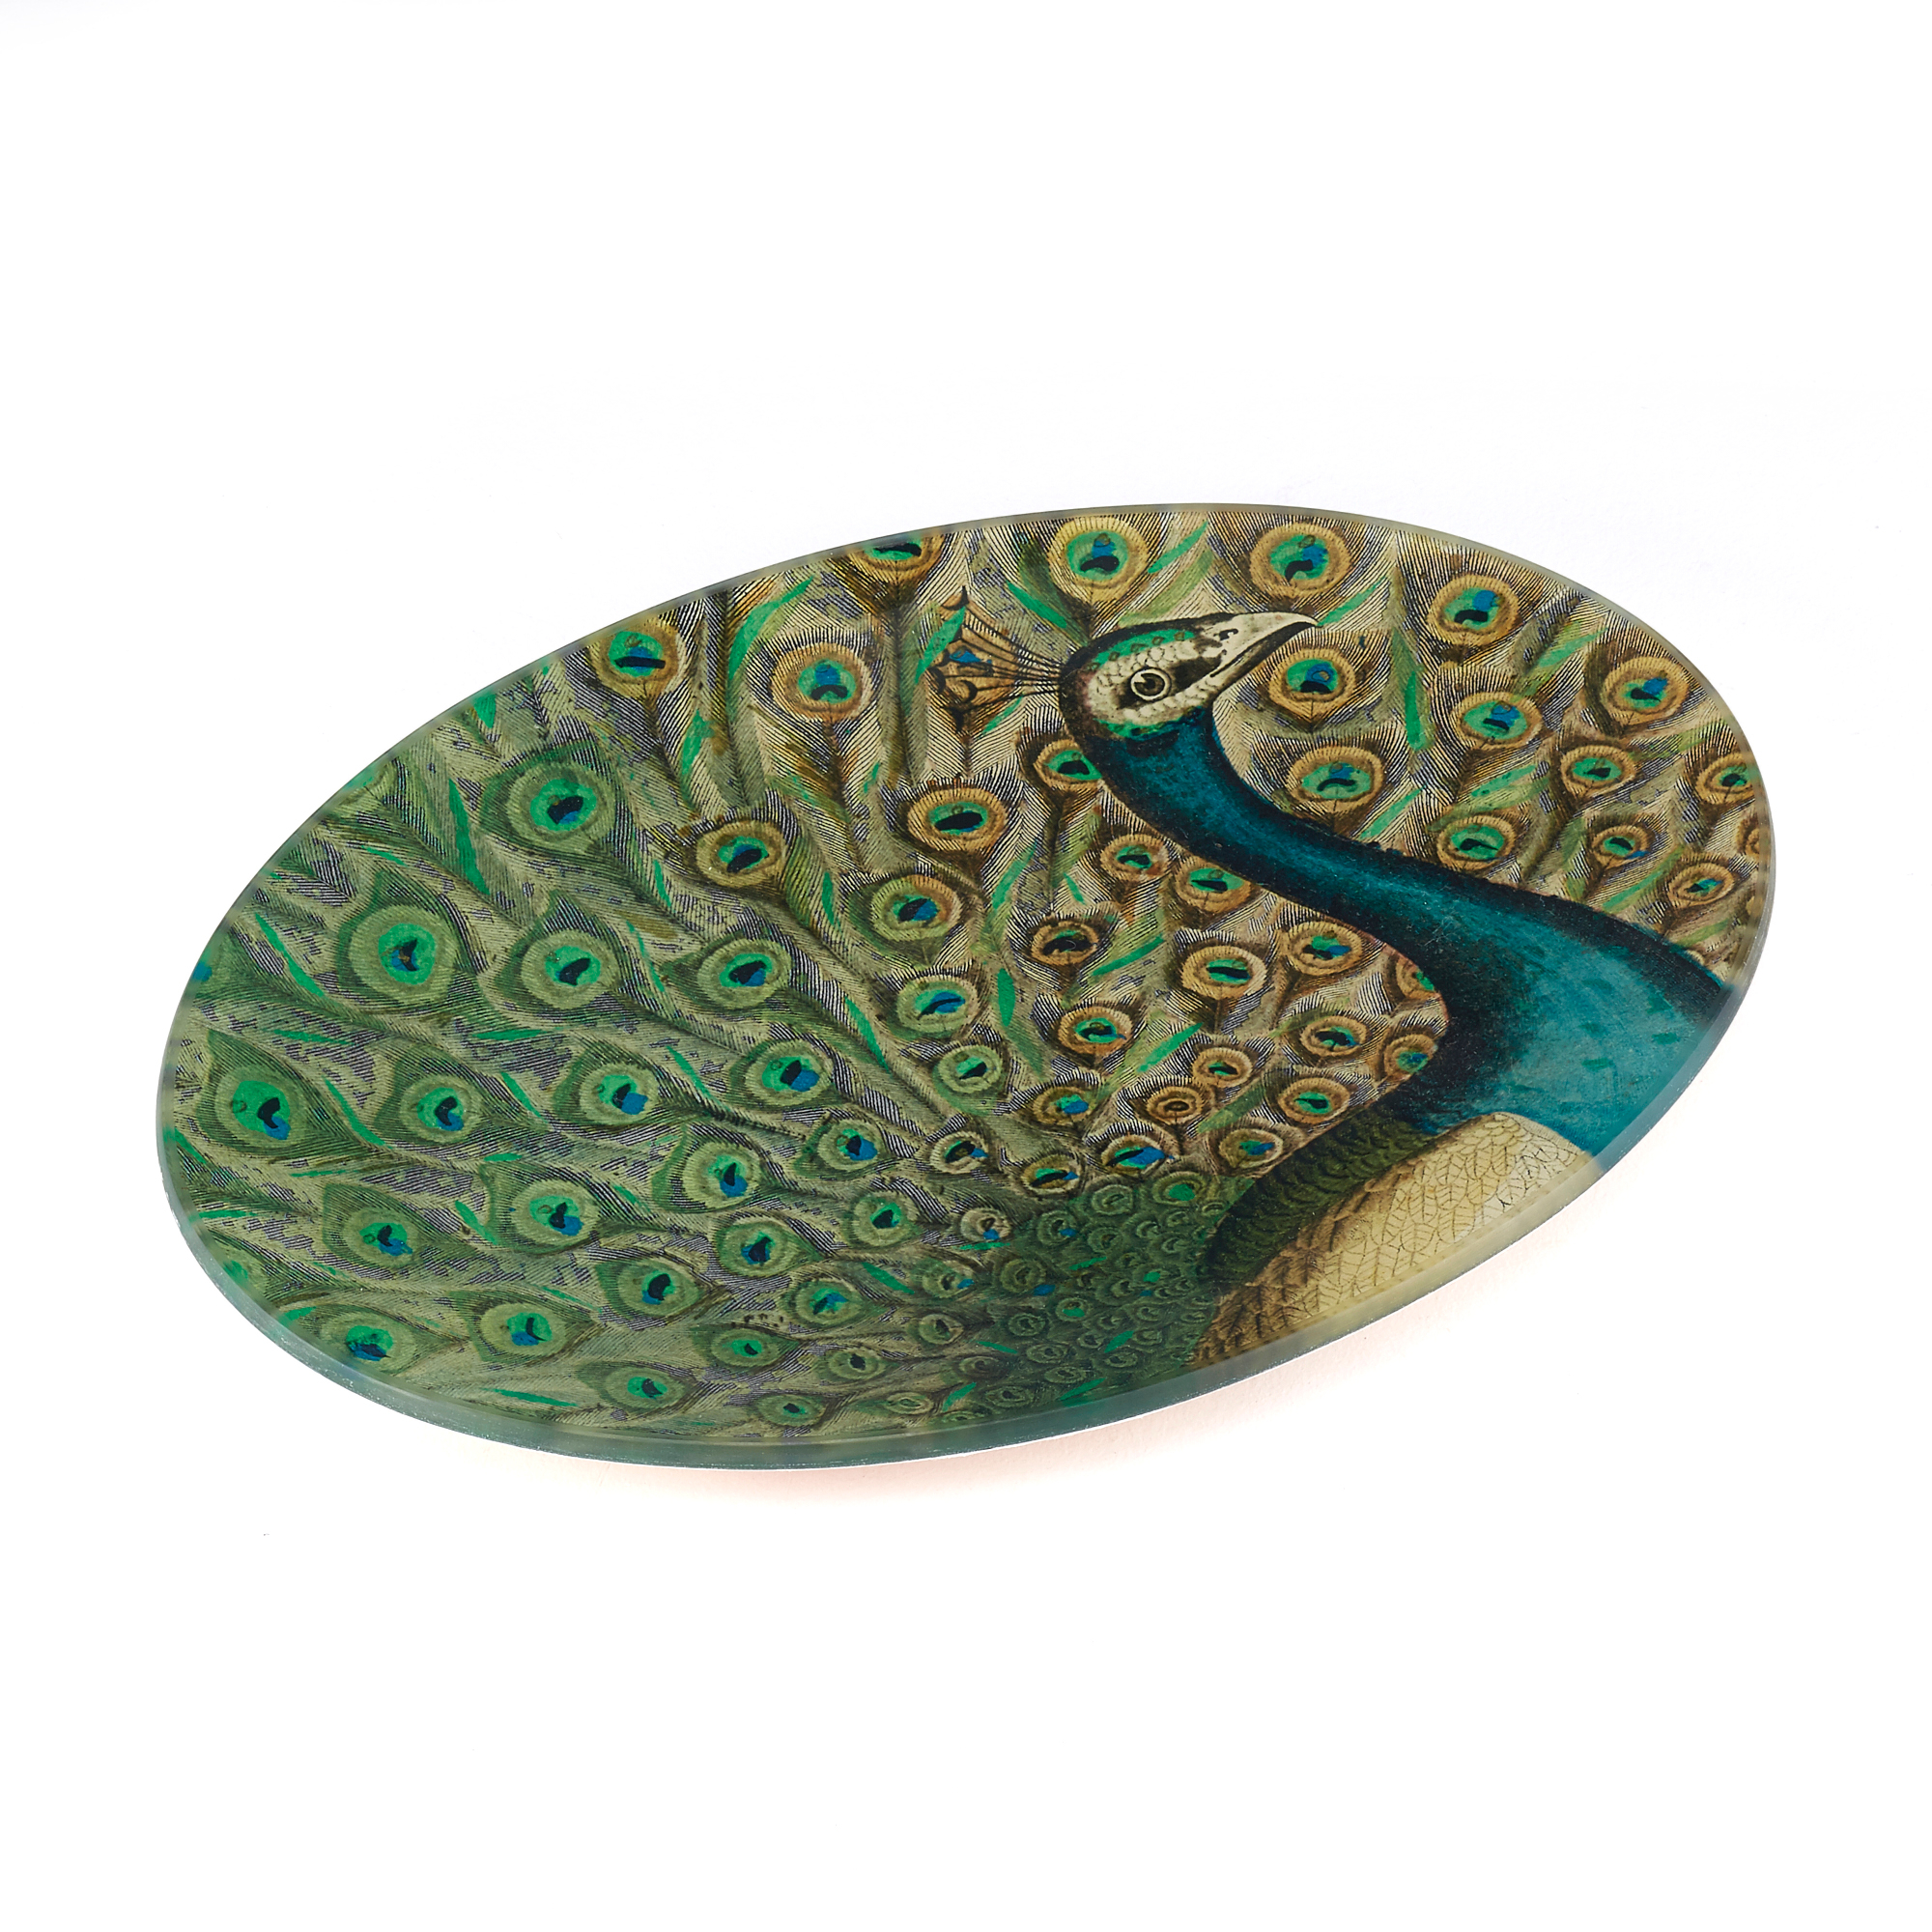 John Derian Flourish Oval Peacock Tray